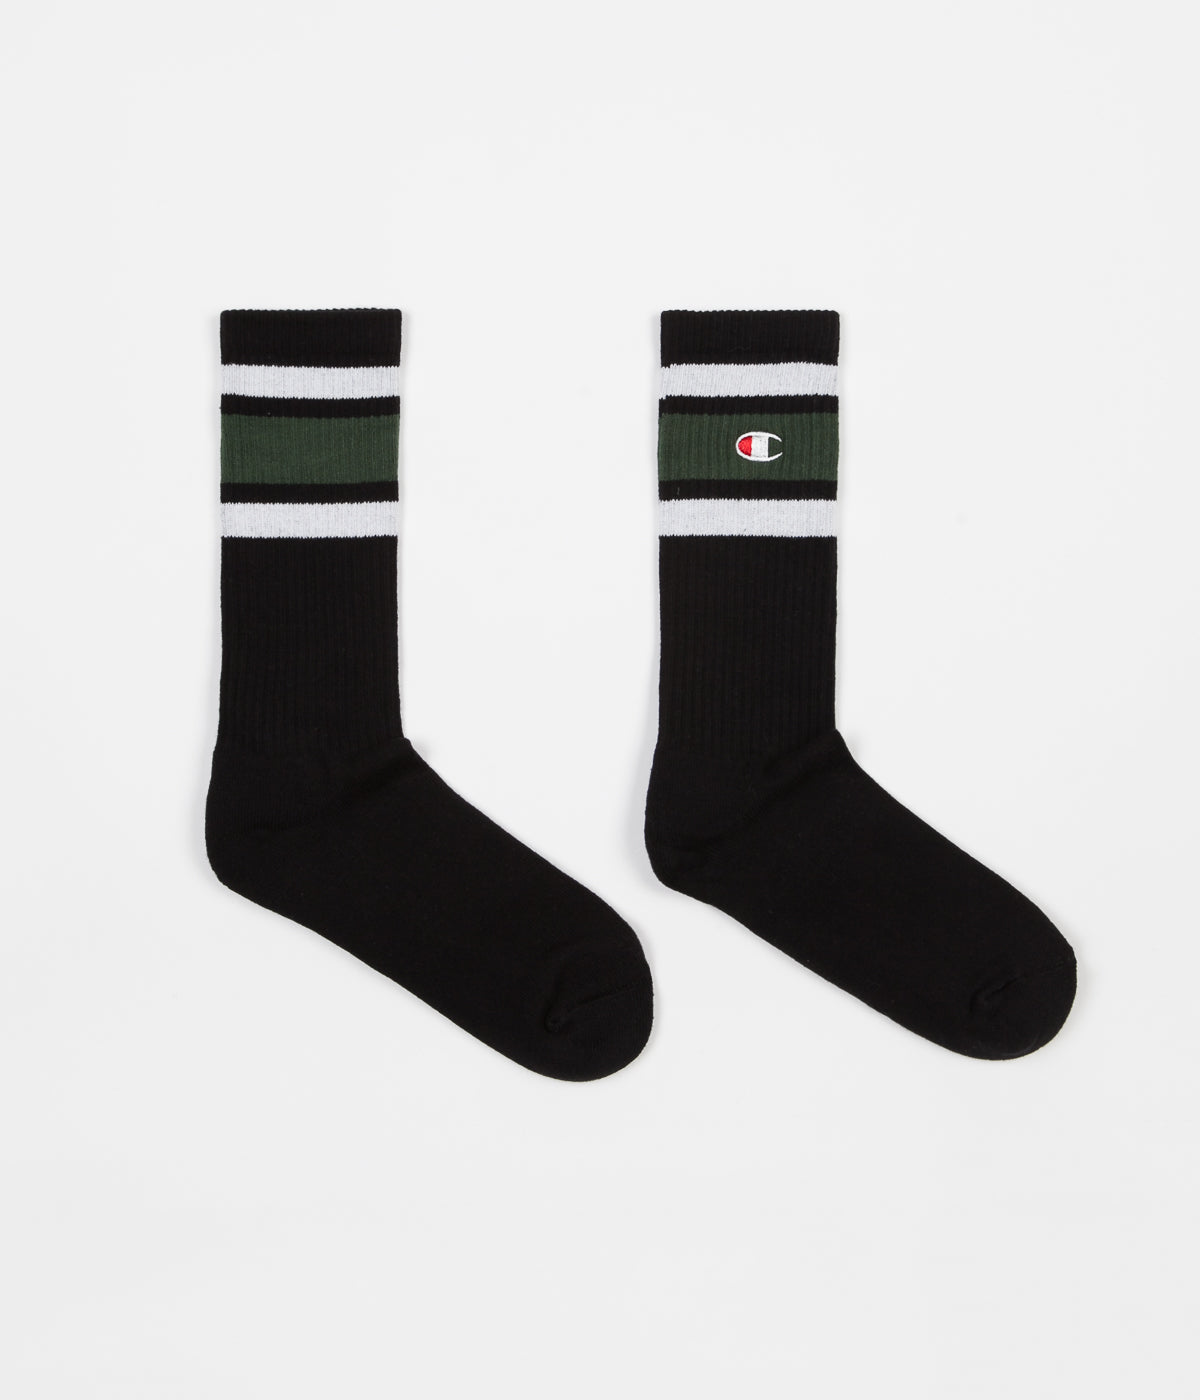 Champion Crew Socks - Black / Green / White